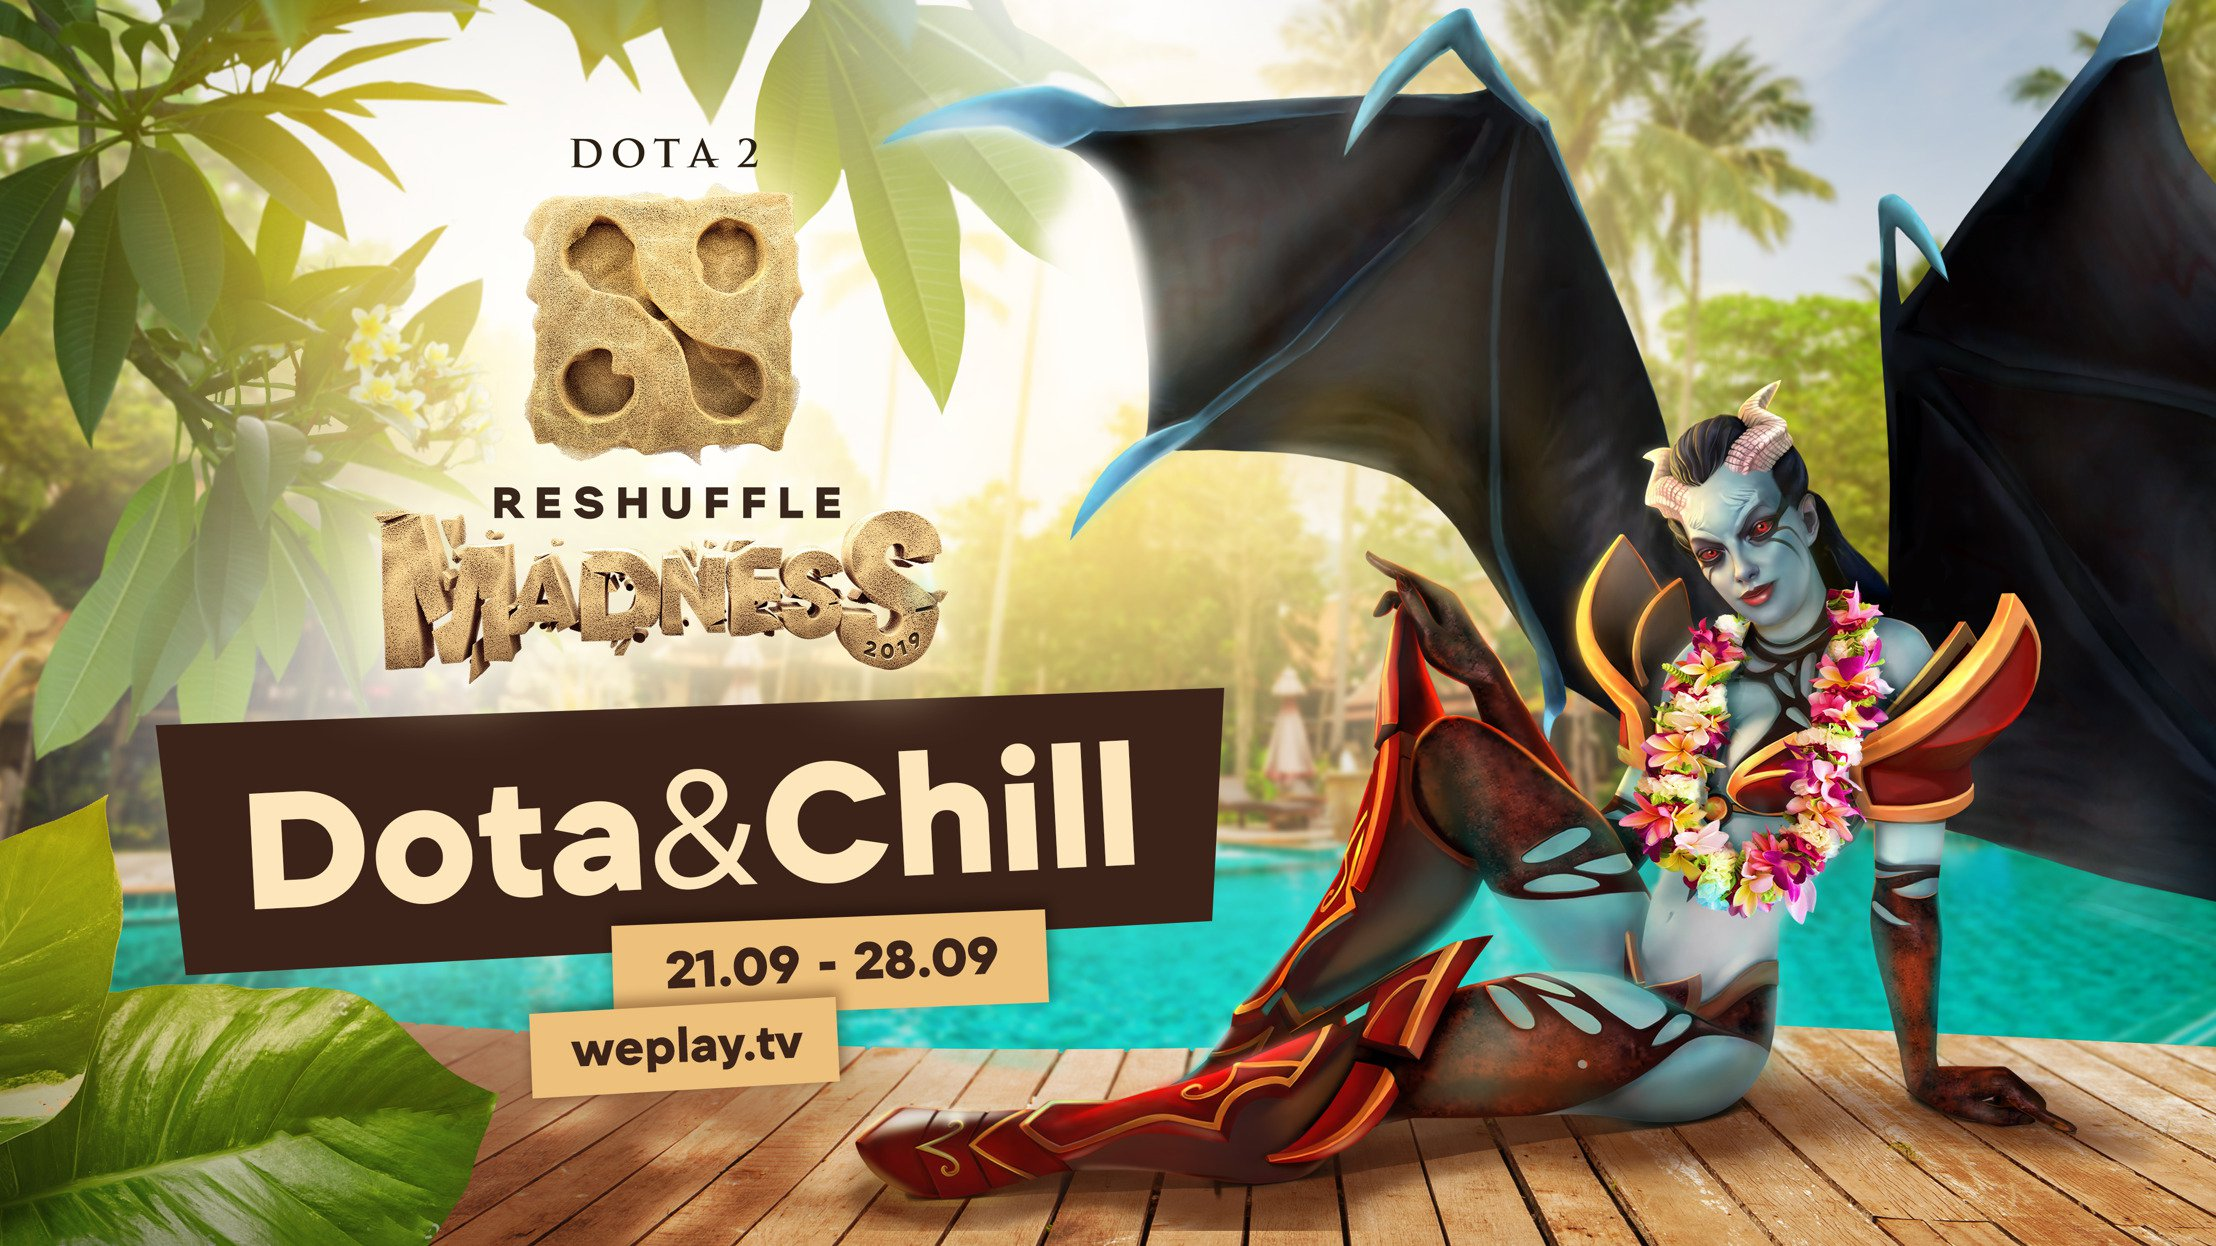 WePlay! Dota 2 Reshuffle Madness 2019: Everything You Need To Know